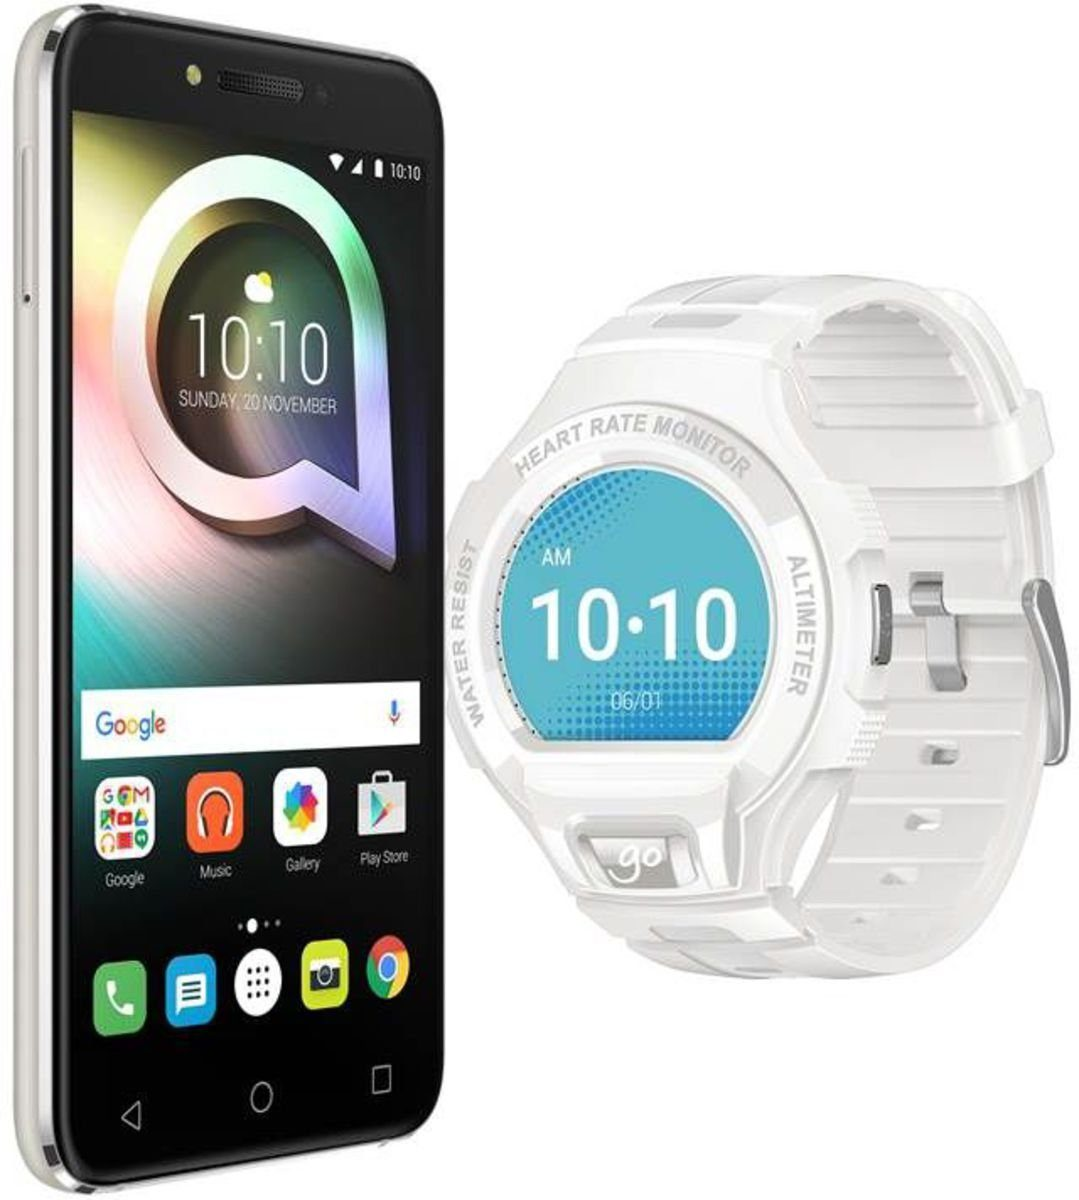 Alcatel Smartphone »SHINE lite 5080X + GO watch SM03«